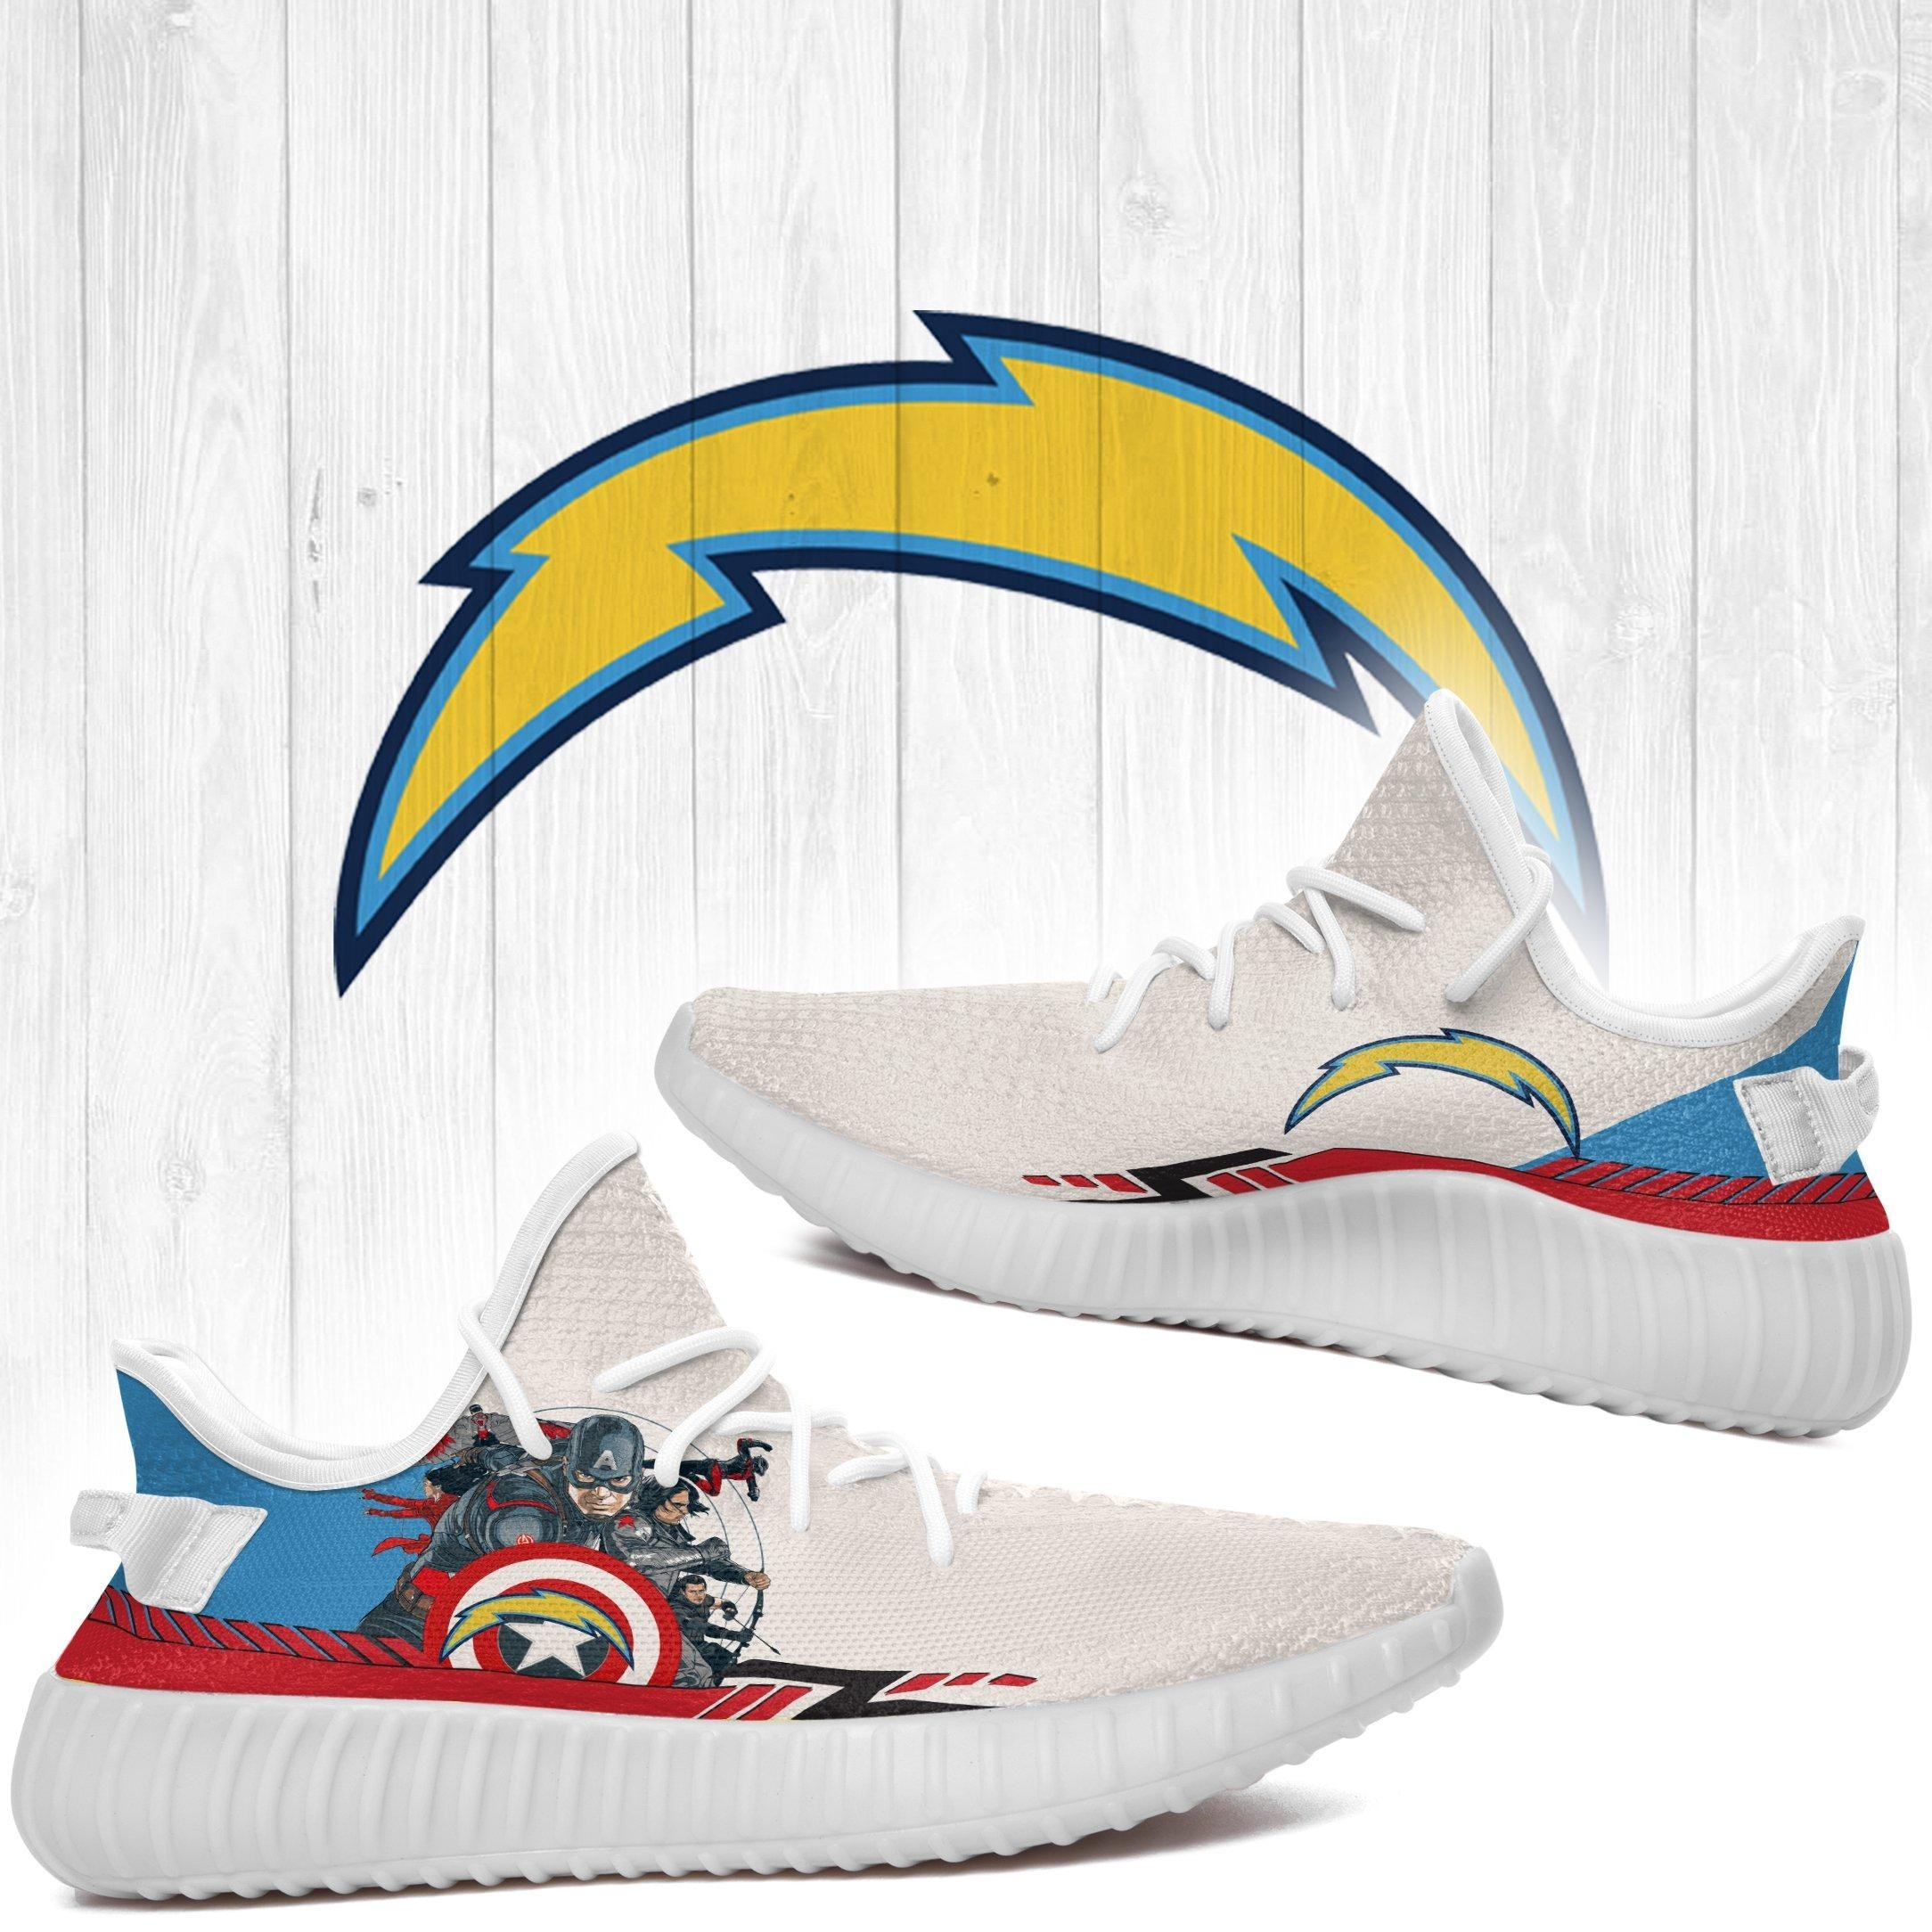 Superheroes-Los Angeles Chargers NFL Yeezy Boost 350 v2 Shoes Custom Yeezys Trends 2020